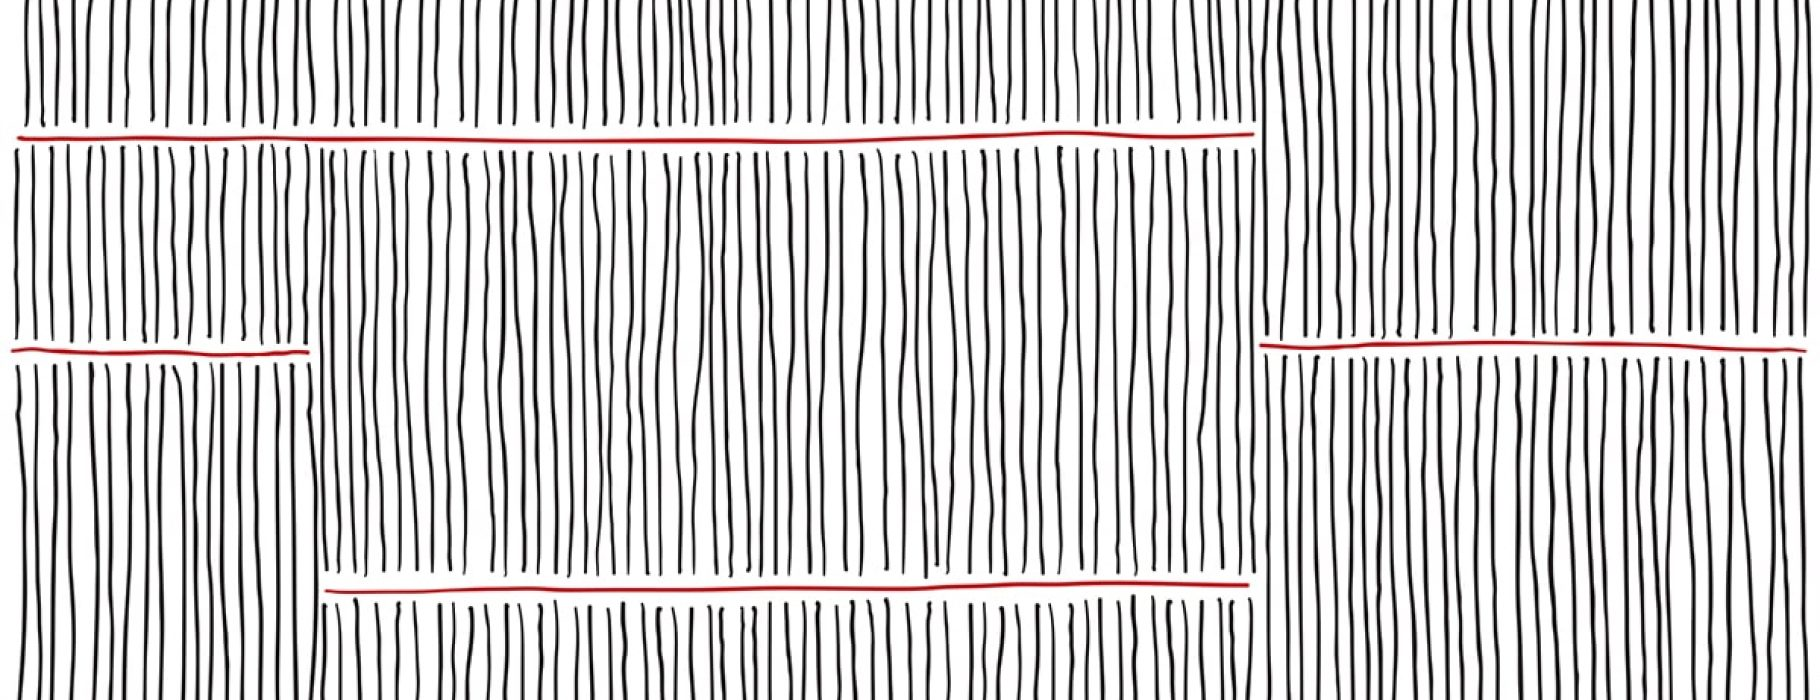 An abstract rendering of hand-drawn vertical black lines crossed by a few horizontal red lines